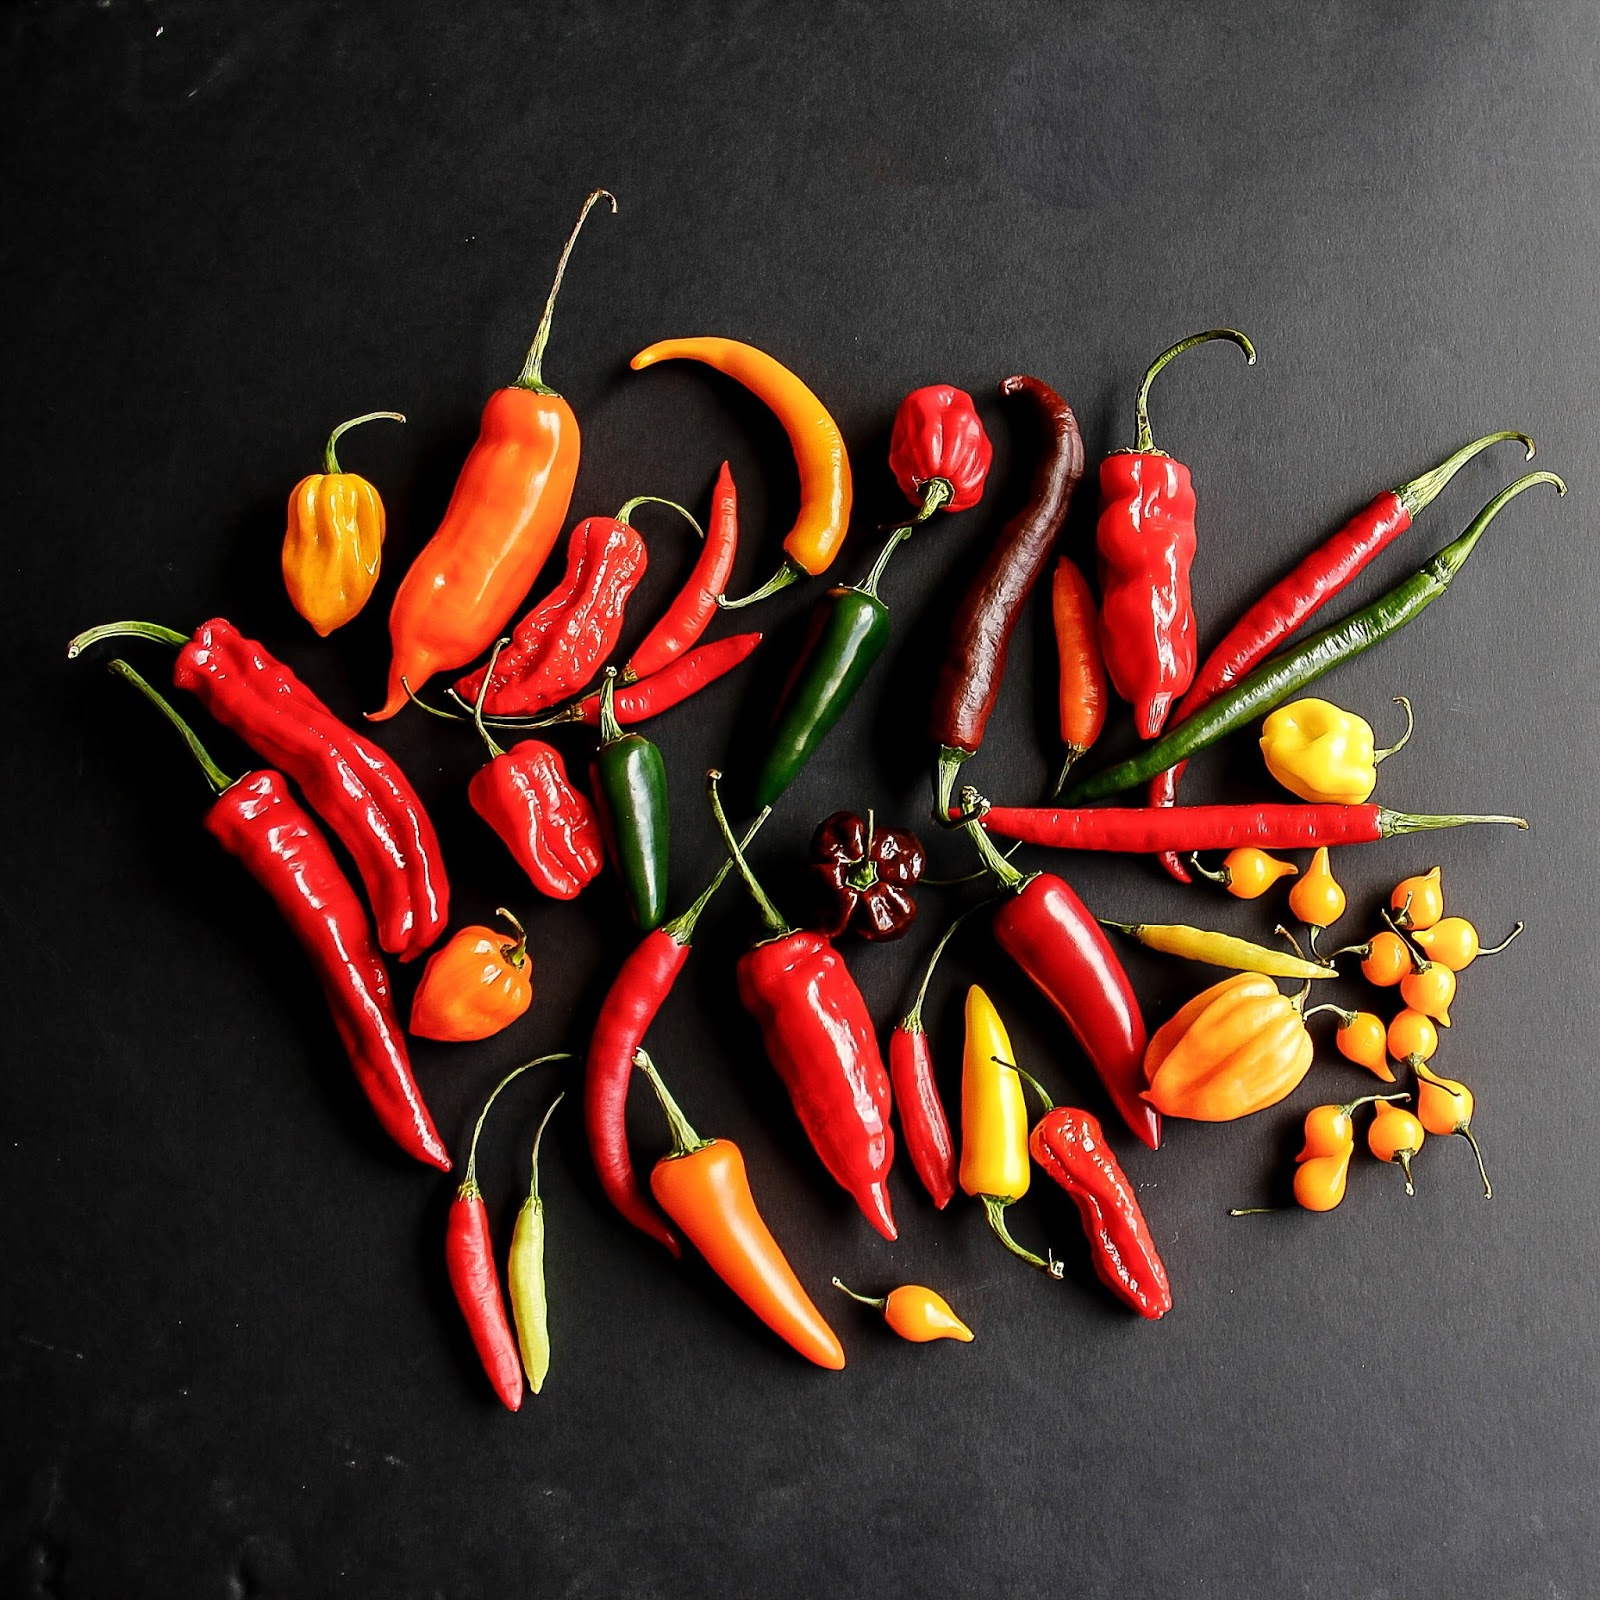 About chilli peppers and Homemade roasted chilli sauce ...